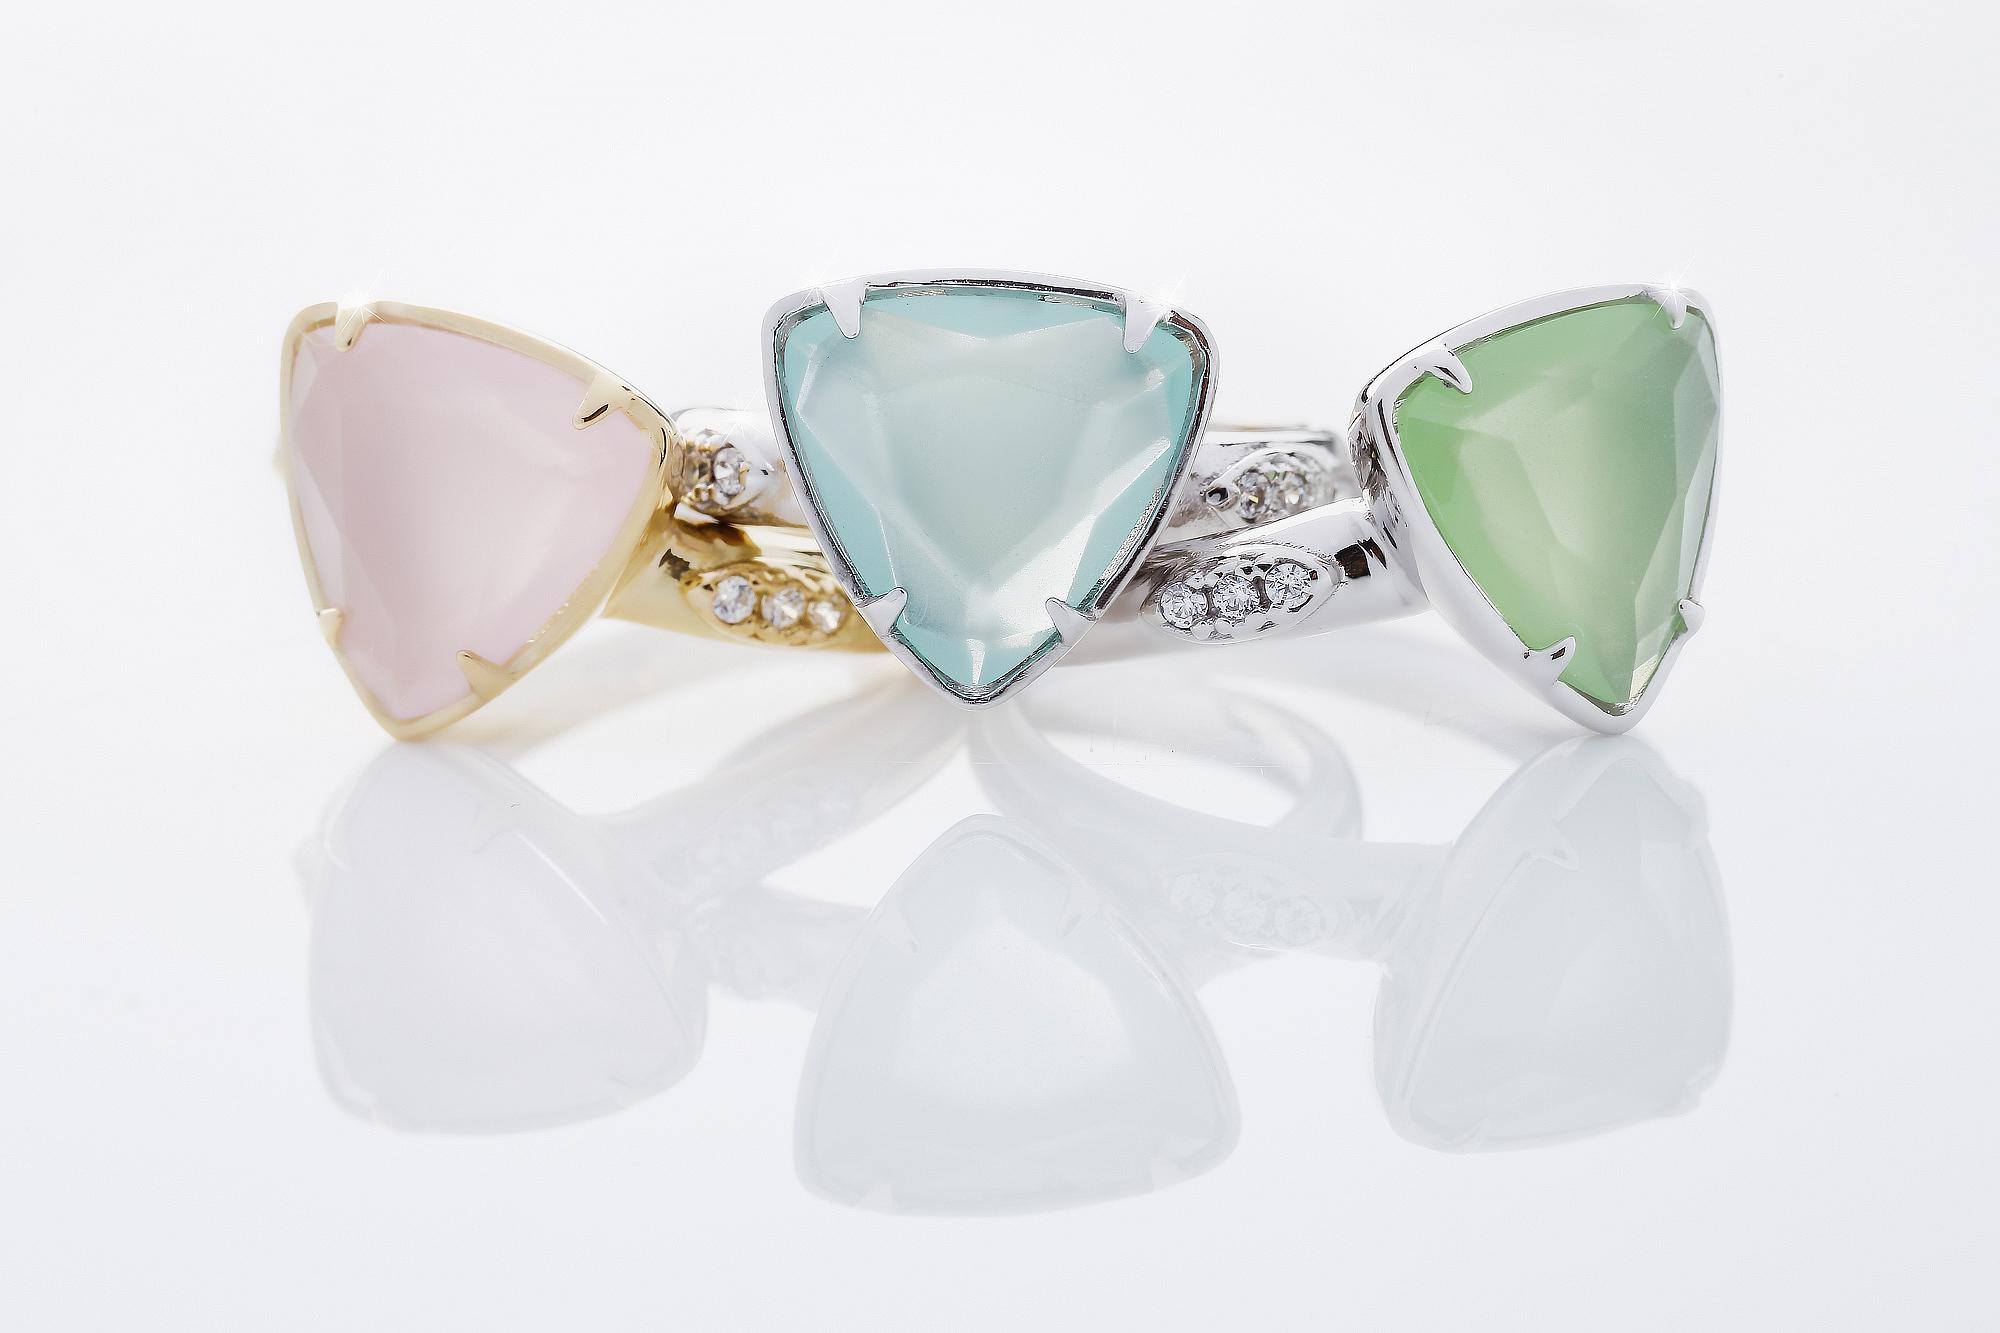 Parrini Gioielli - Rings with stones and gem